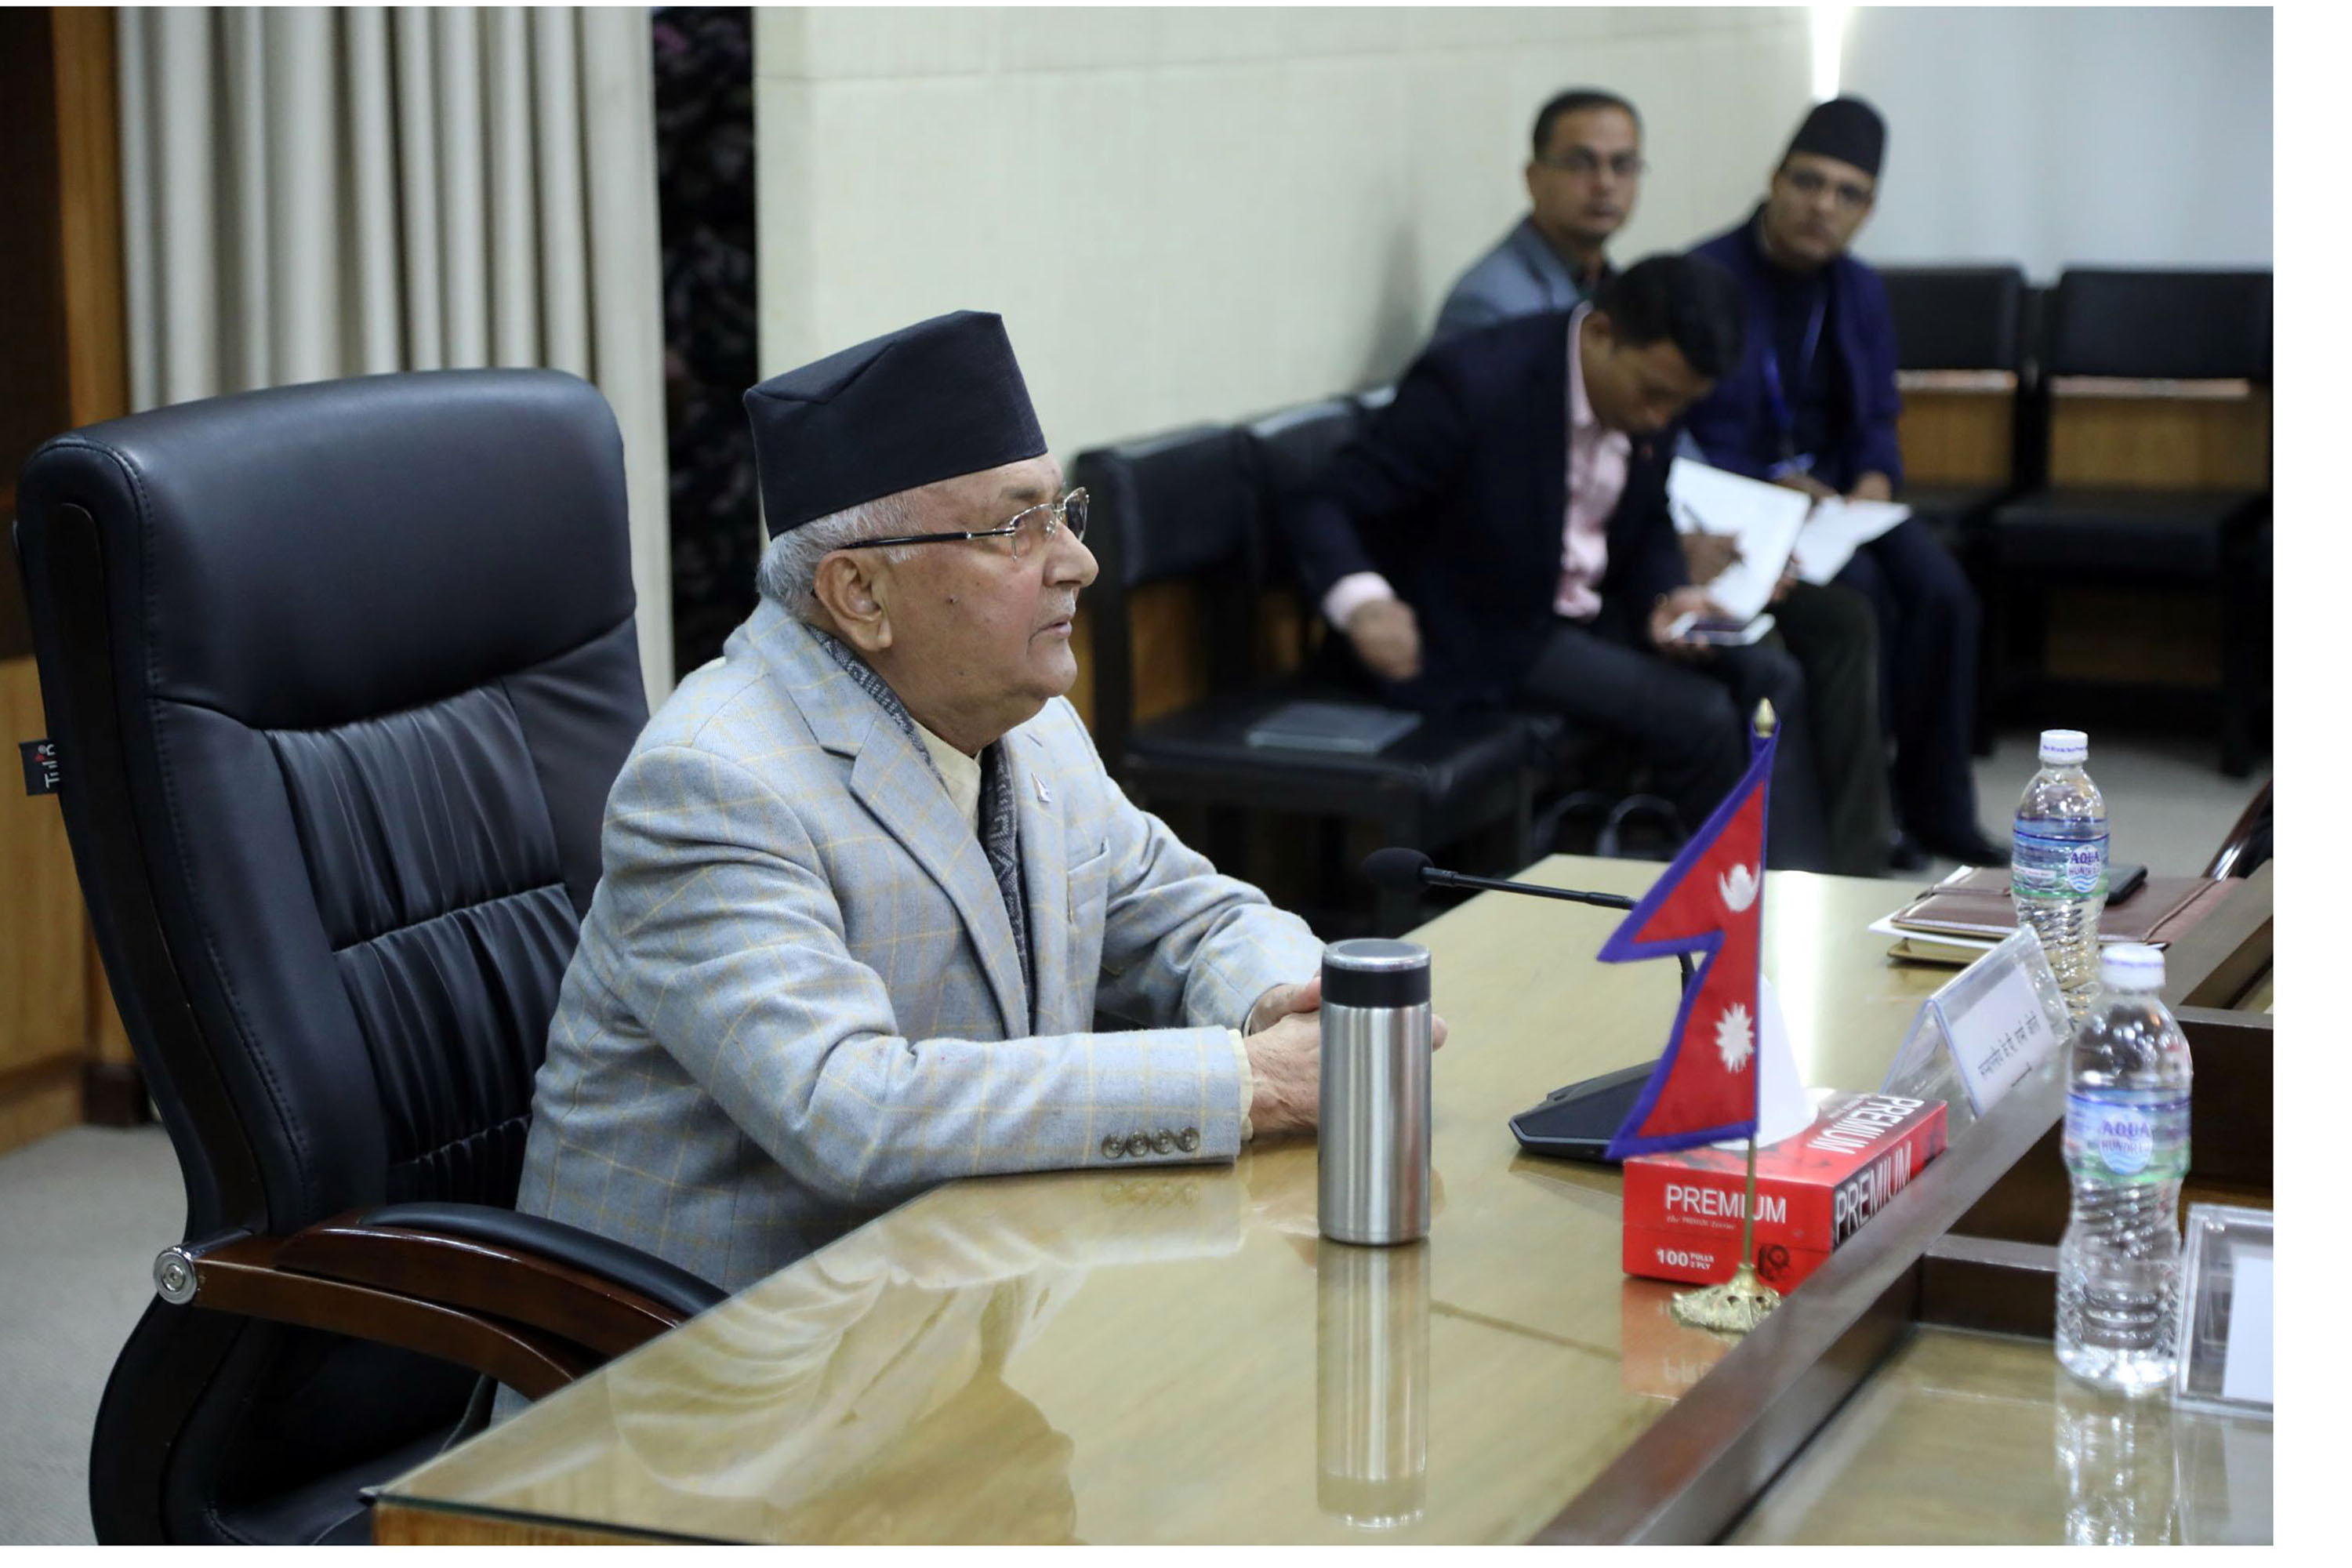 Prime Minister KP Sharma Oli at the second day session of the First Quarterly Review of Approved Programmes and Budget for Fiscal Year 2018/19 held in Kathmandu on November 22, 2018. Photo: RSS